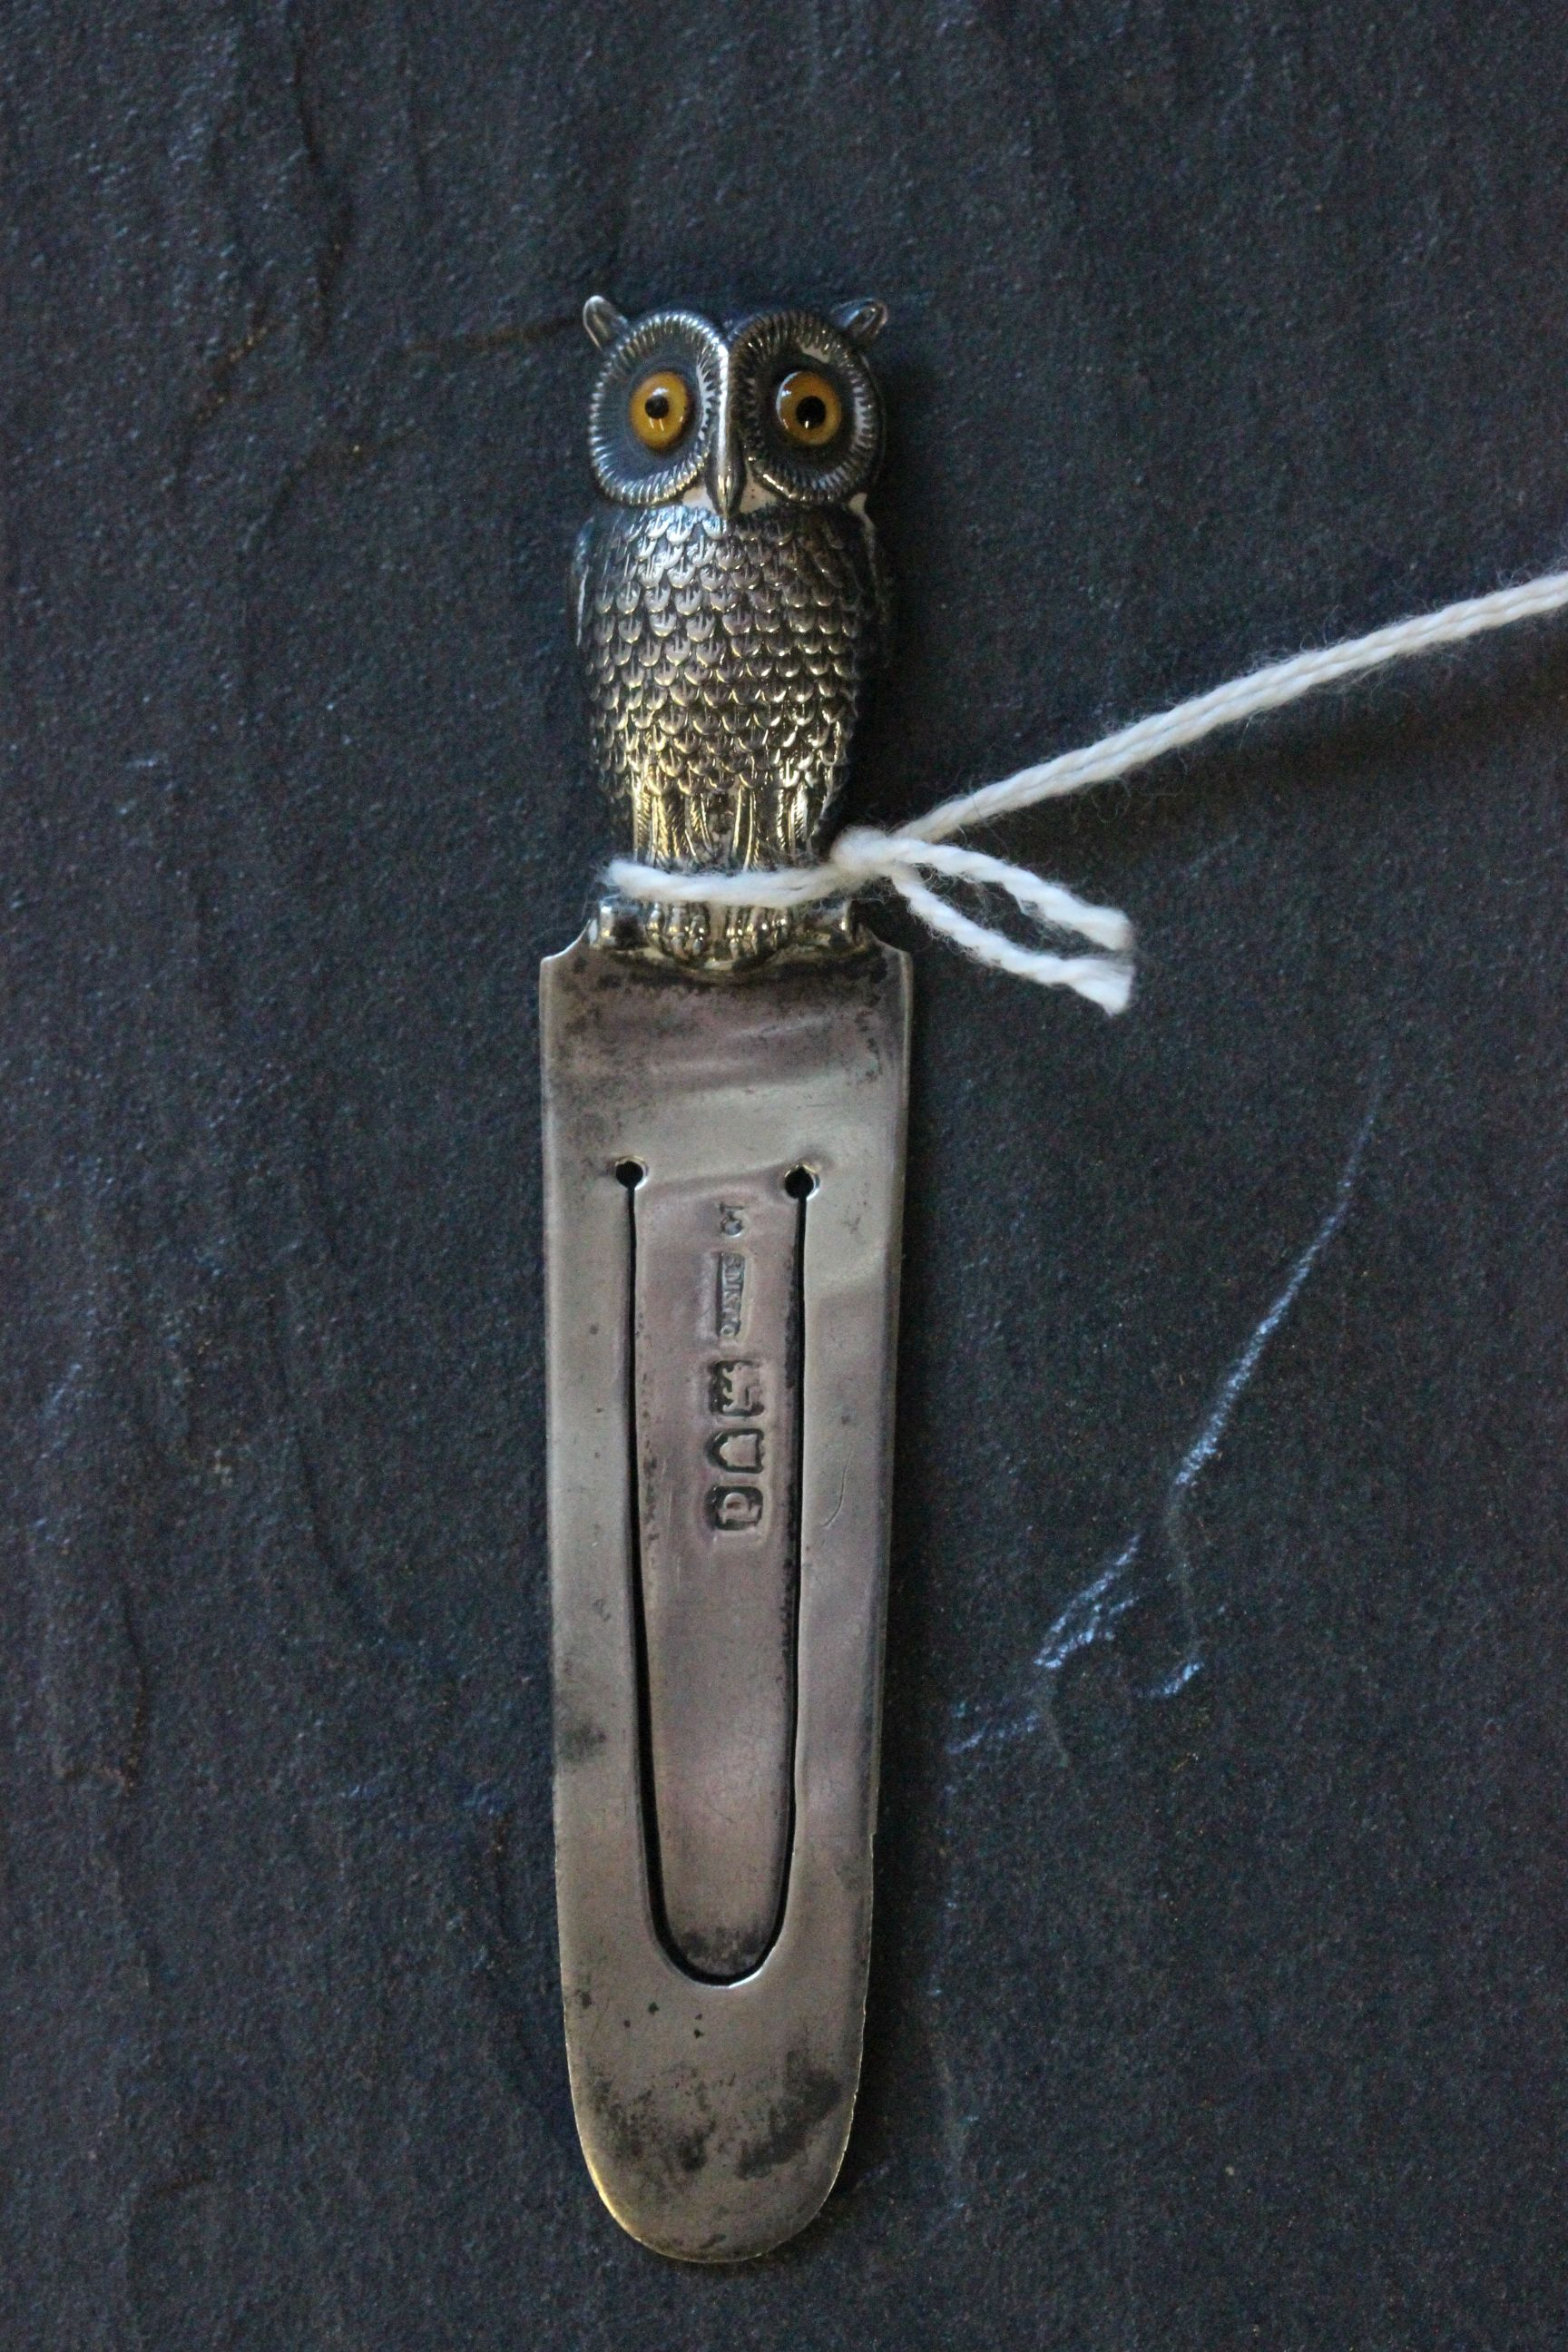 Lot 17 - A silver book mark with owl finial set with glass eyes, London 1900, Samson & Mordan